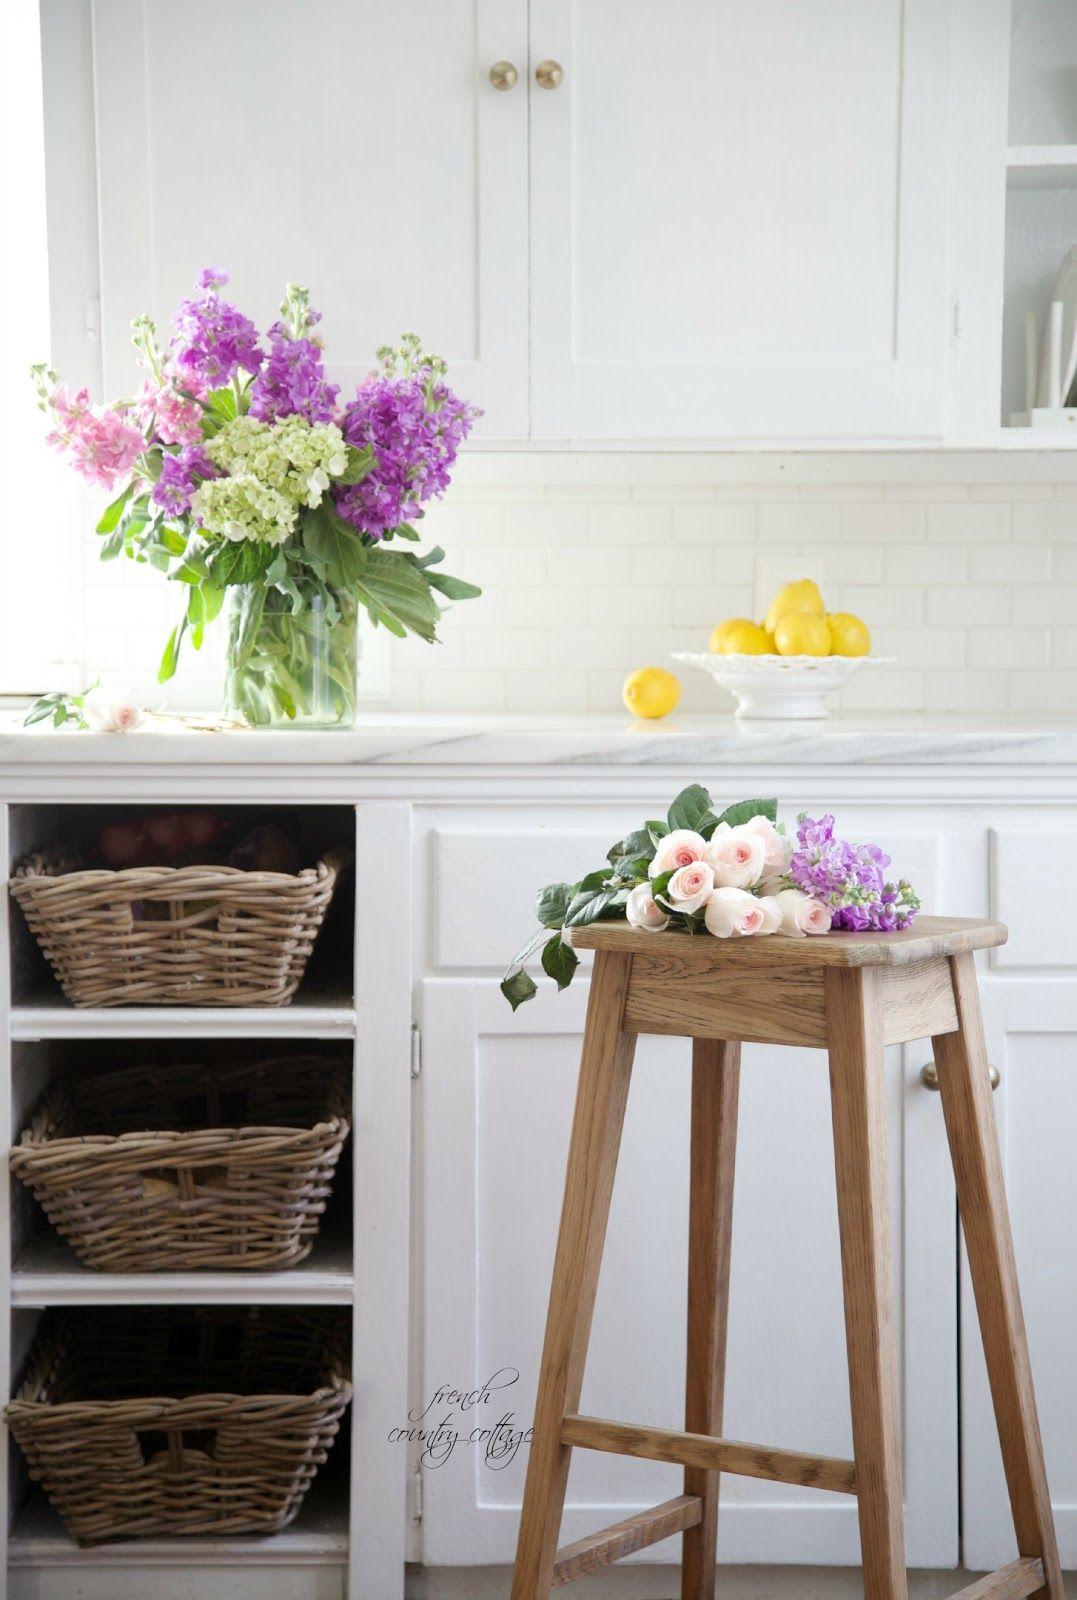 Take Drawers Out And Replace With Baskets From FRENCH COUNTRY - French country cottage blog